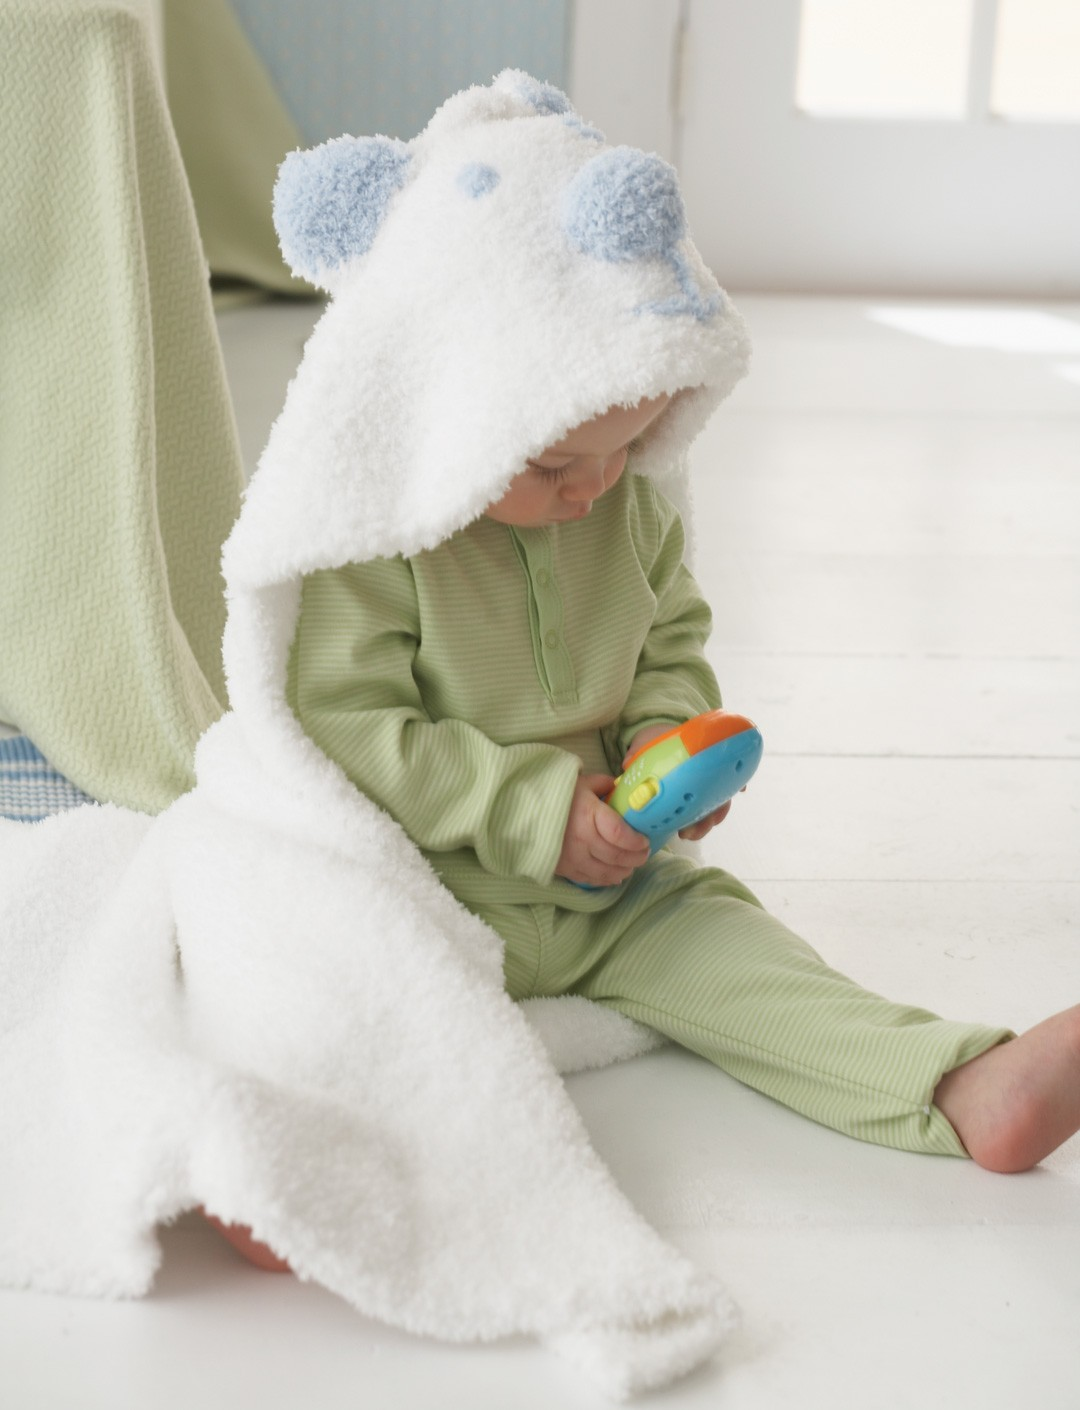 Knitting Pattern Baby Hooded Blanket : Bernat Cozy Cub Hooded Blanket, Knit Pattern Yarnspirations